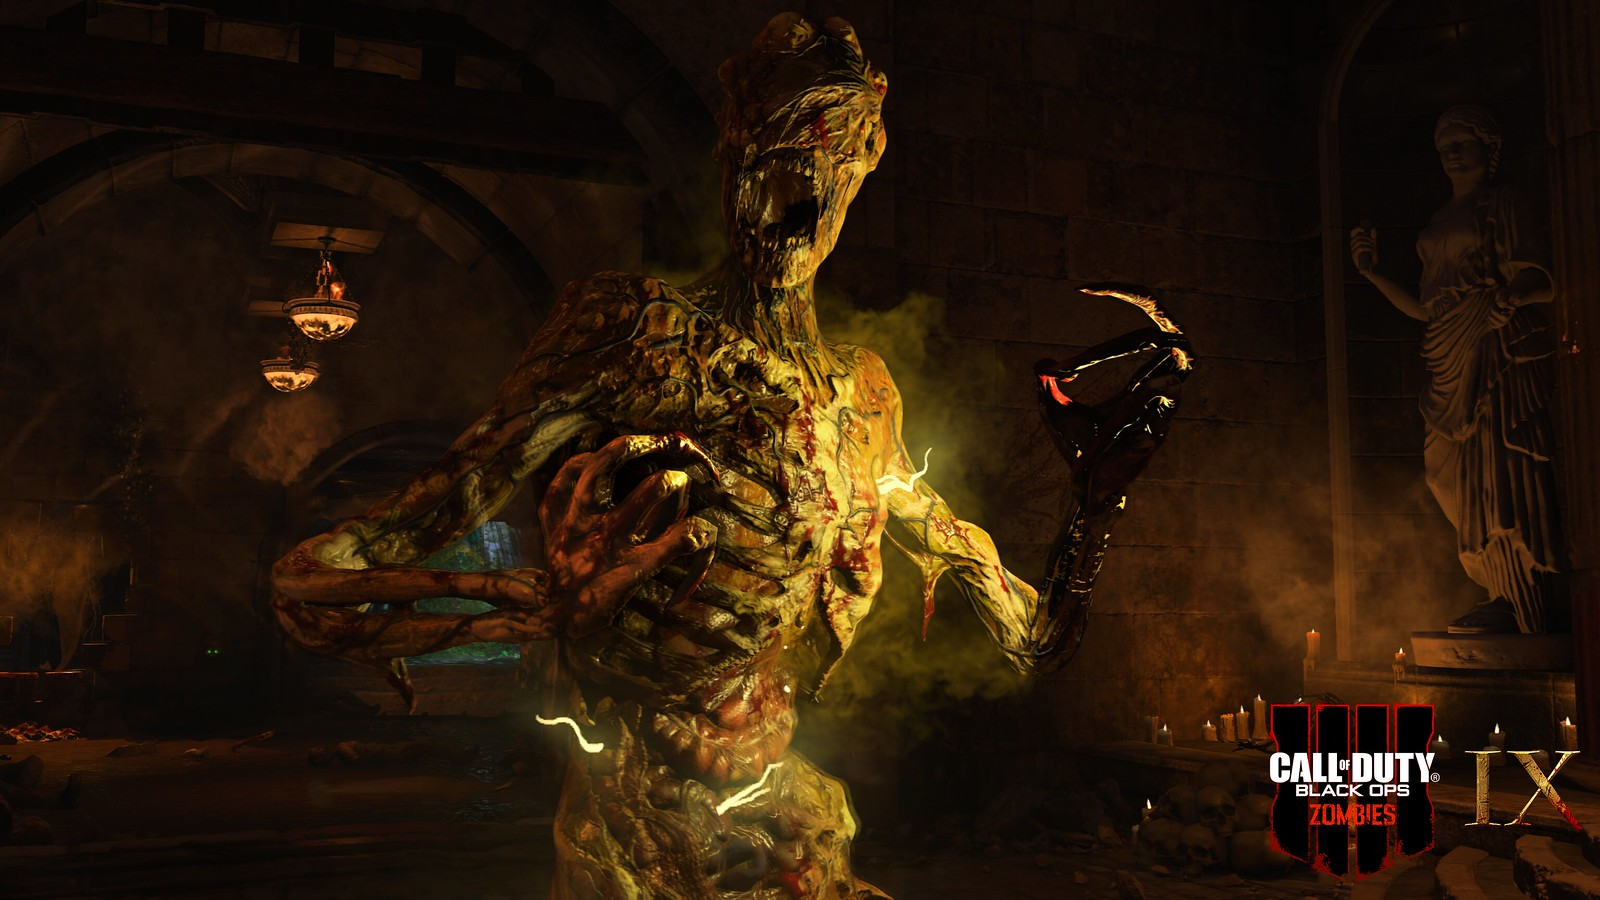 Black Ops 4 Ix Zombies - Call Of Duty Black Ops 4 Zombies - HD Wallpaper